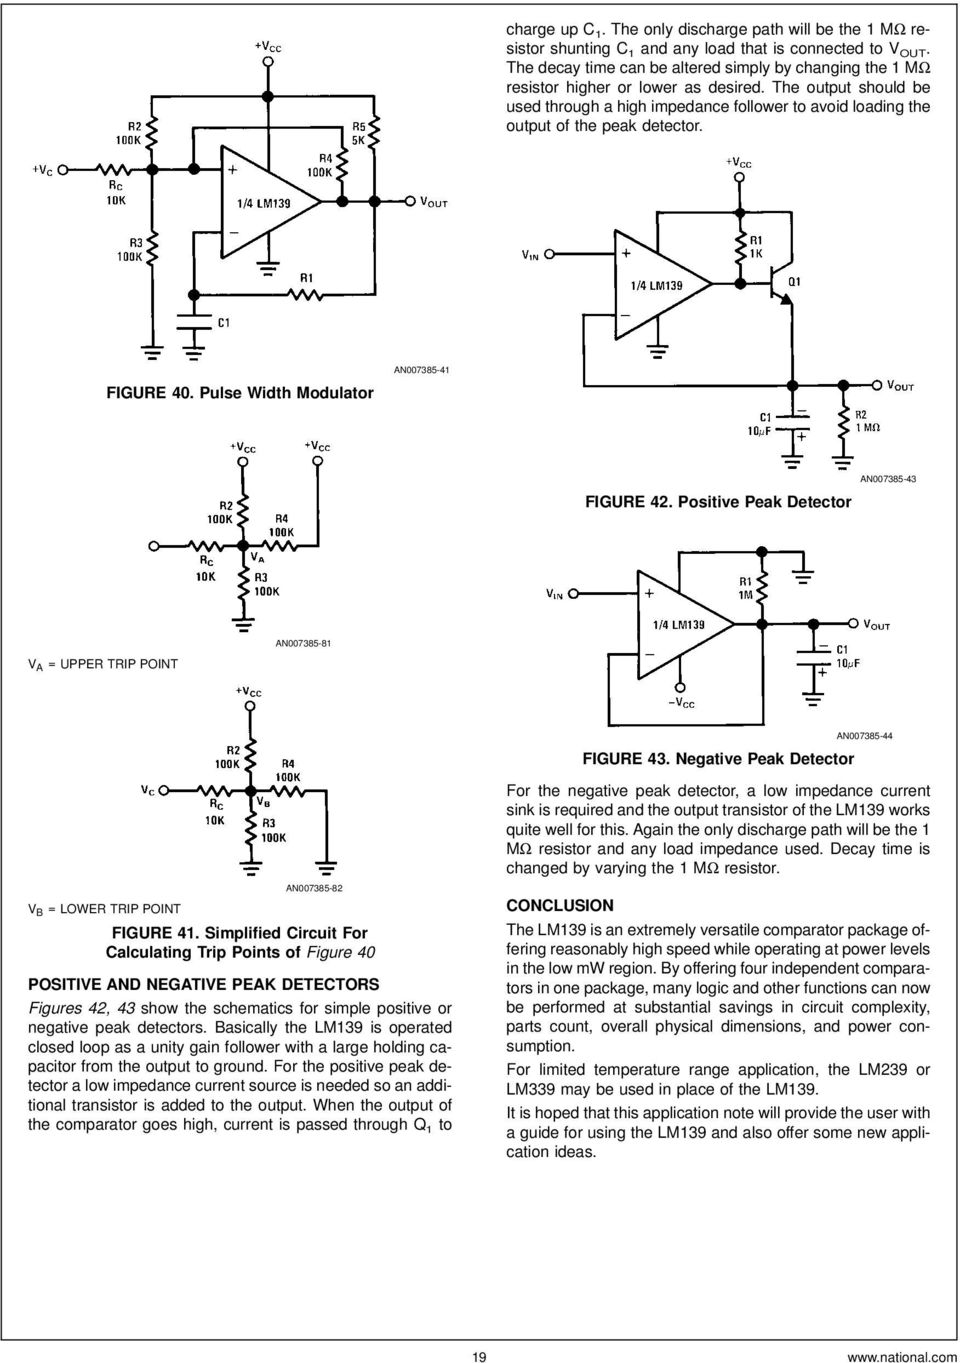 Lm139 Lm239 Lm339 A Quad Of Independently Functioning Comparators Pdf The Circuit Schematic For Voltage Comparator Output Should Be Used Through High Impedance Follower To Avoid Loading